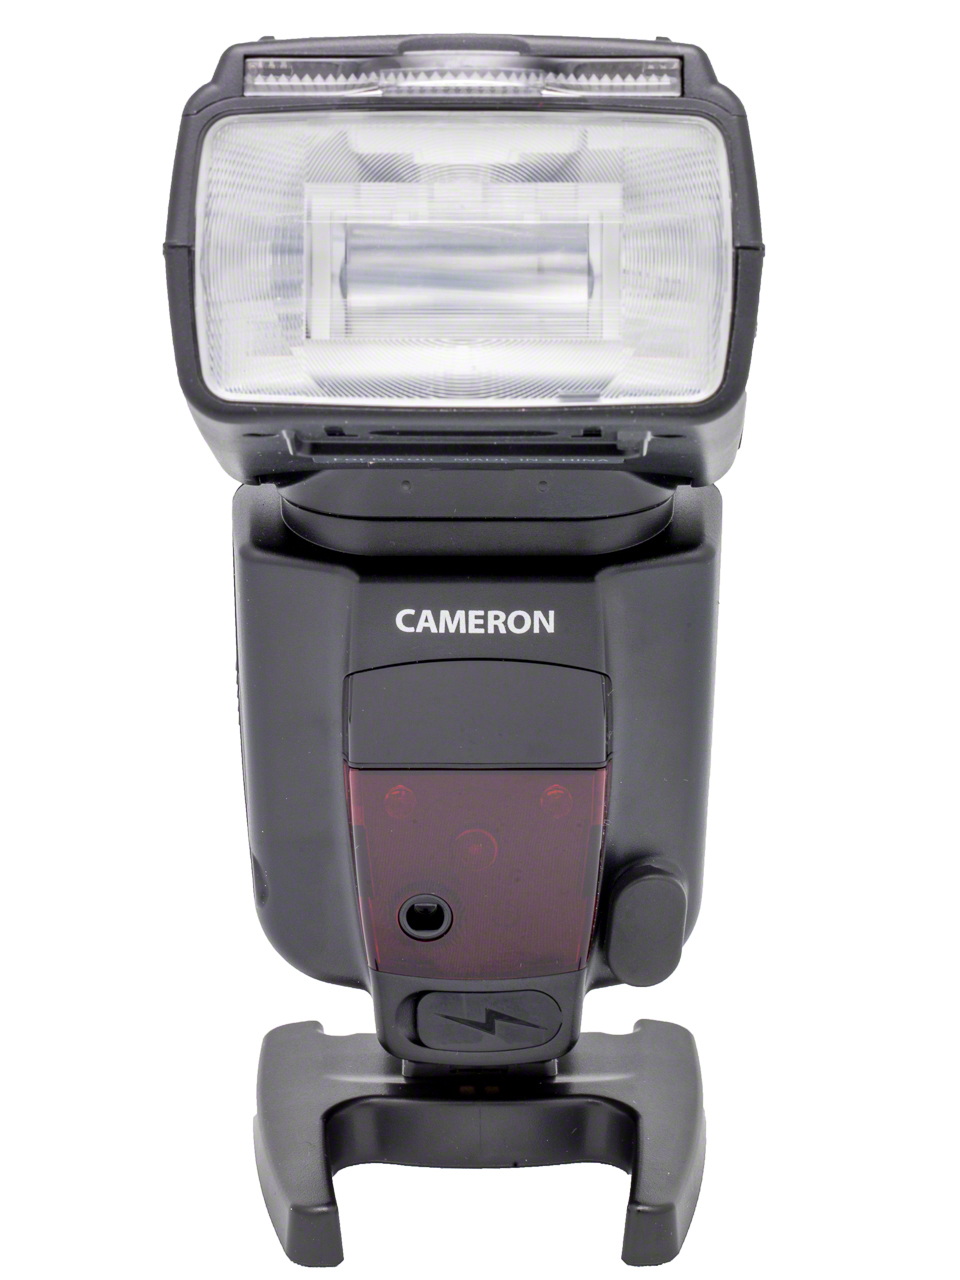 The Cameron W700HS TTL flash available for Canon and Nikon mounts